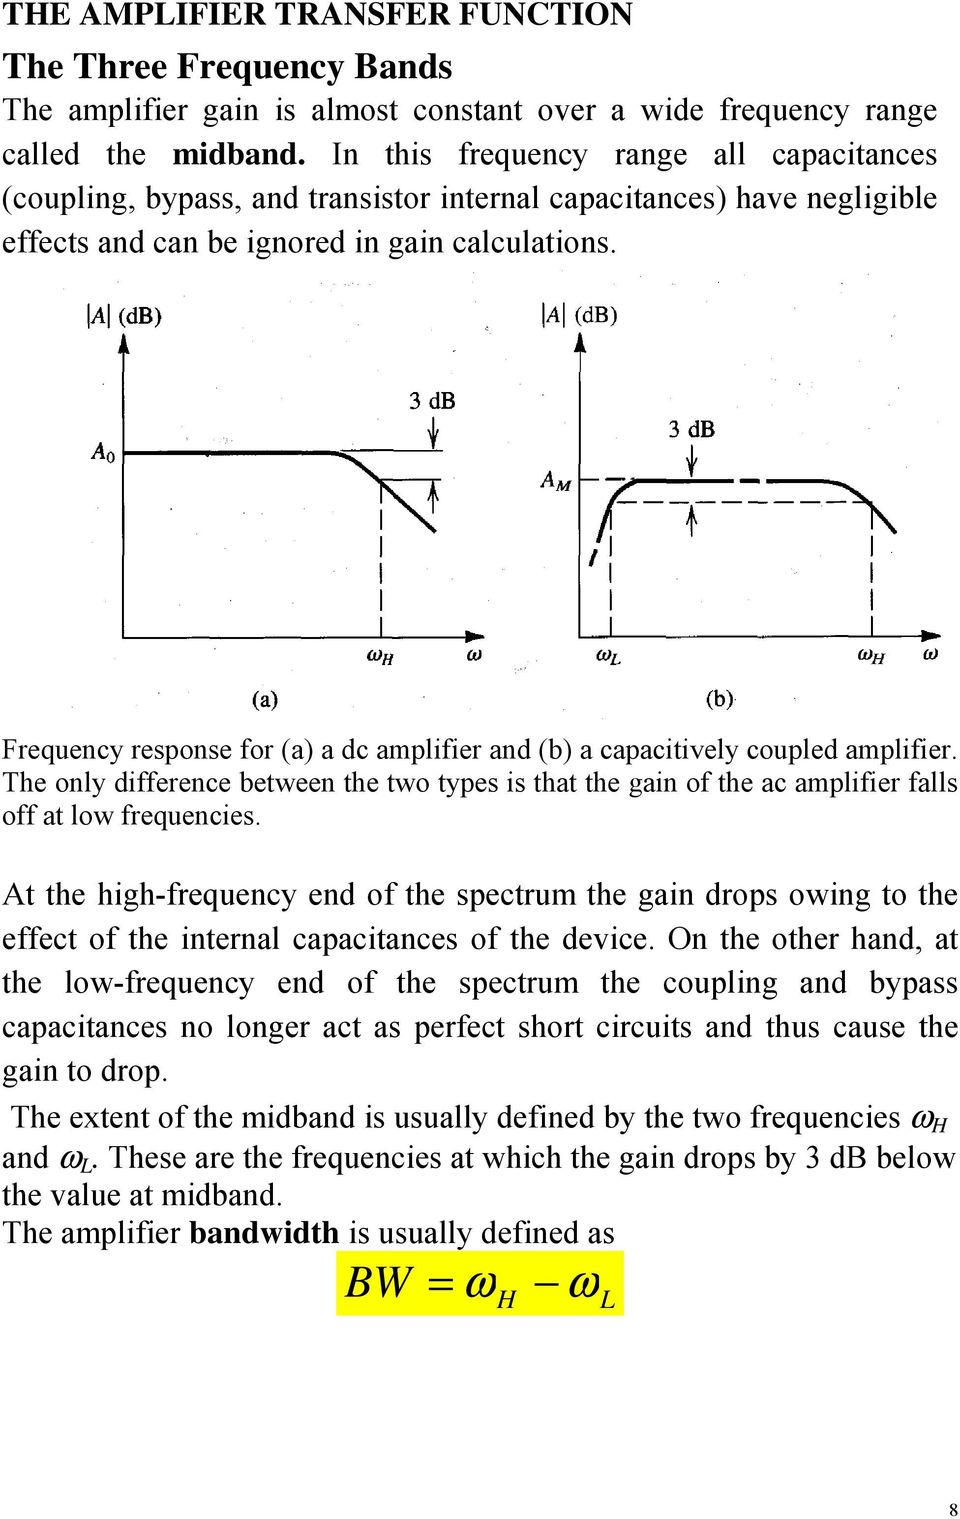 Frequency response for (a) a dc amplifier and (b) a capacitively coupled amplifier. The only difference between the two types is that the gain of the ac amplifier falls off at low frequencies.